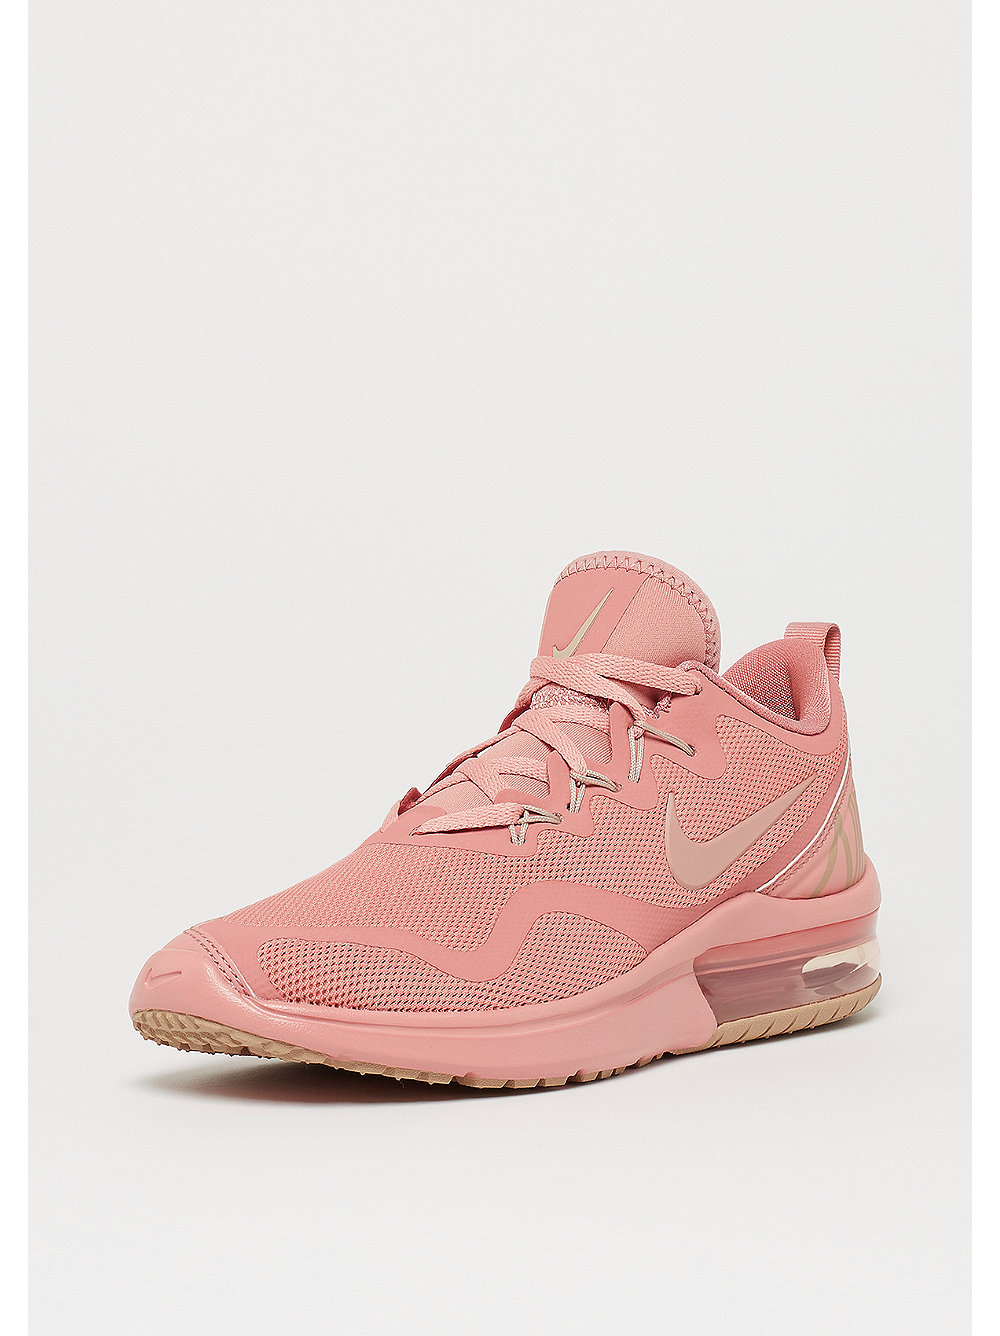 low priced eac1f b7222 Wmns Air Max Fury rusty pink von NIKE bei SNIPES